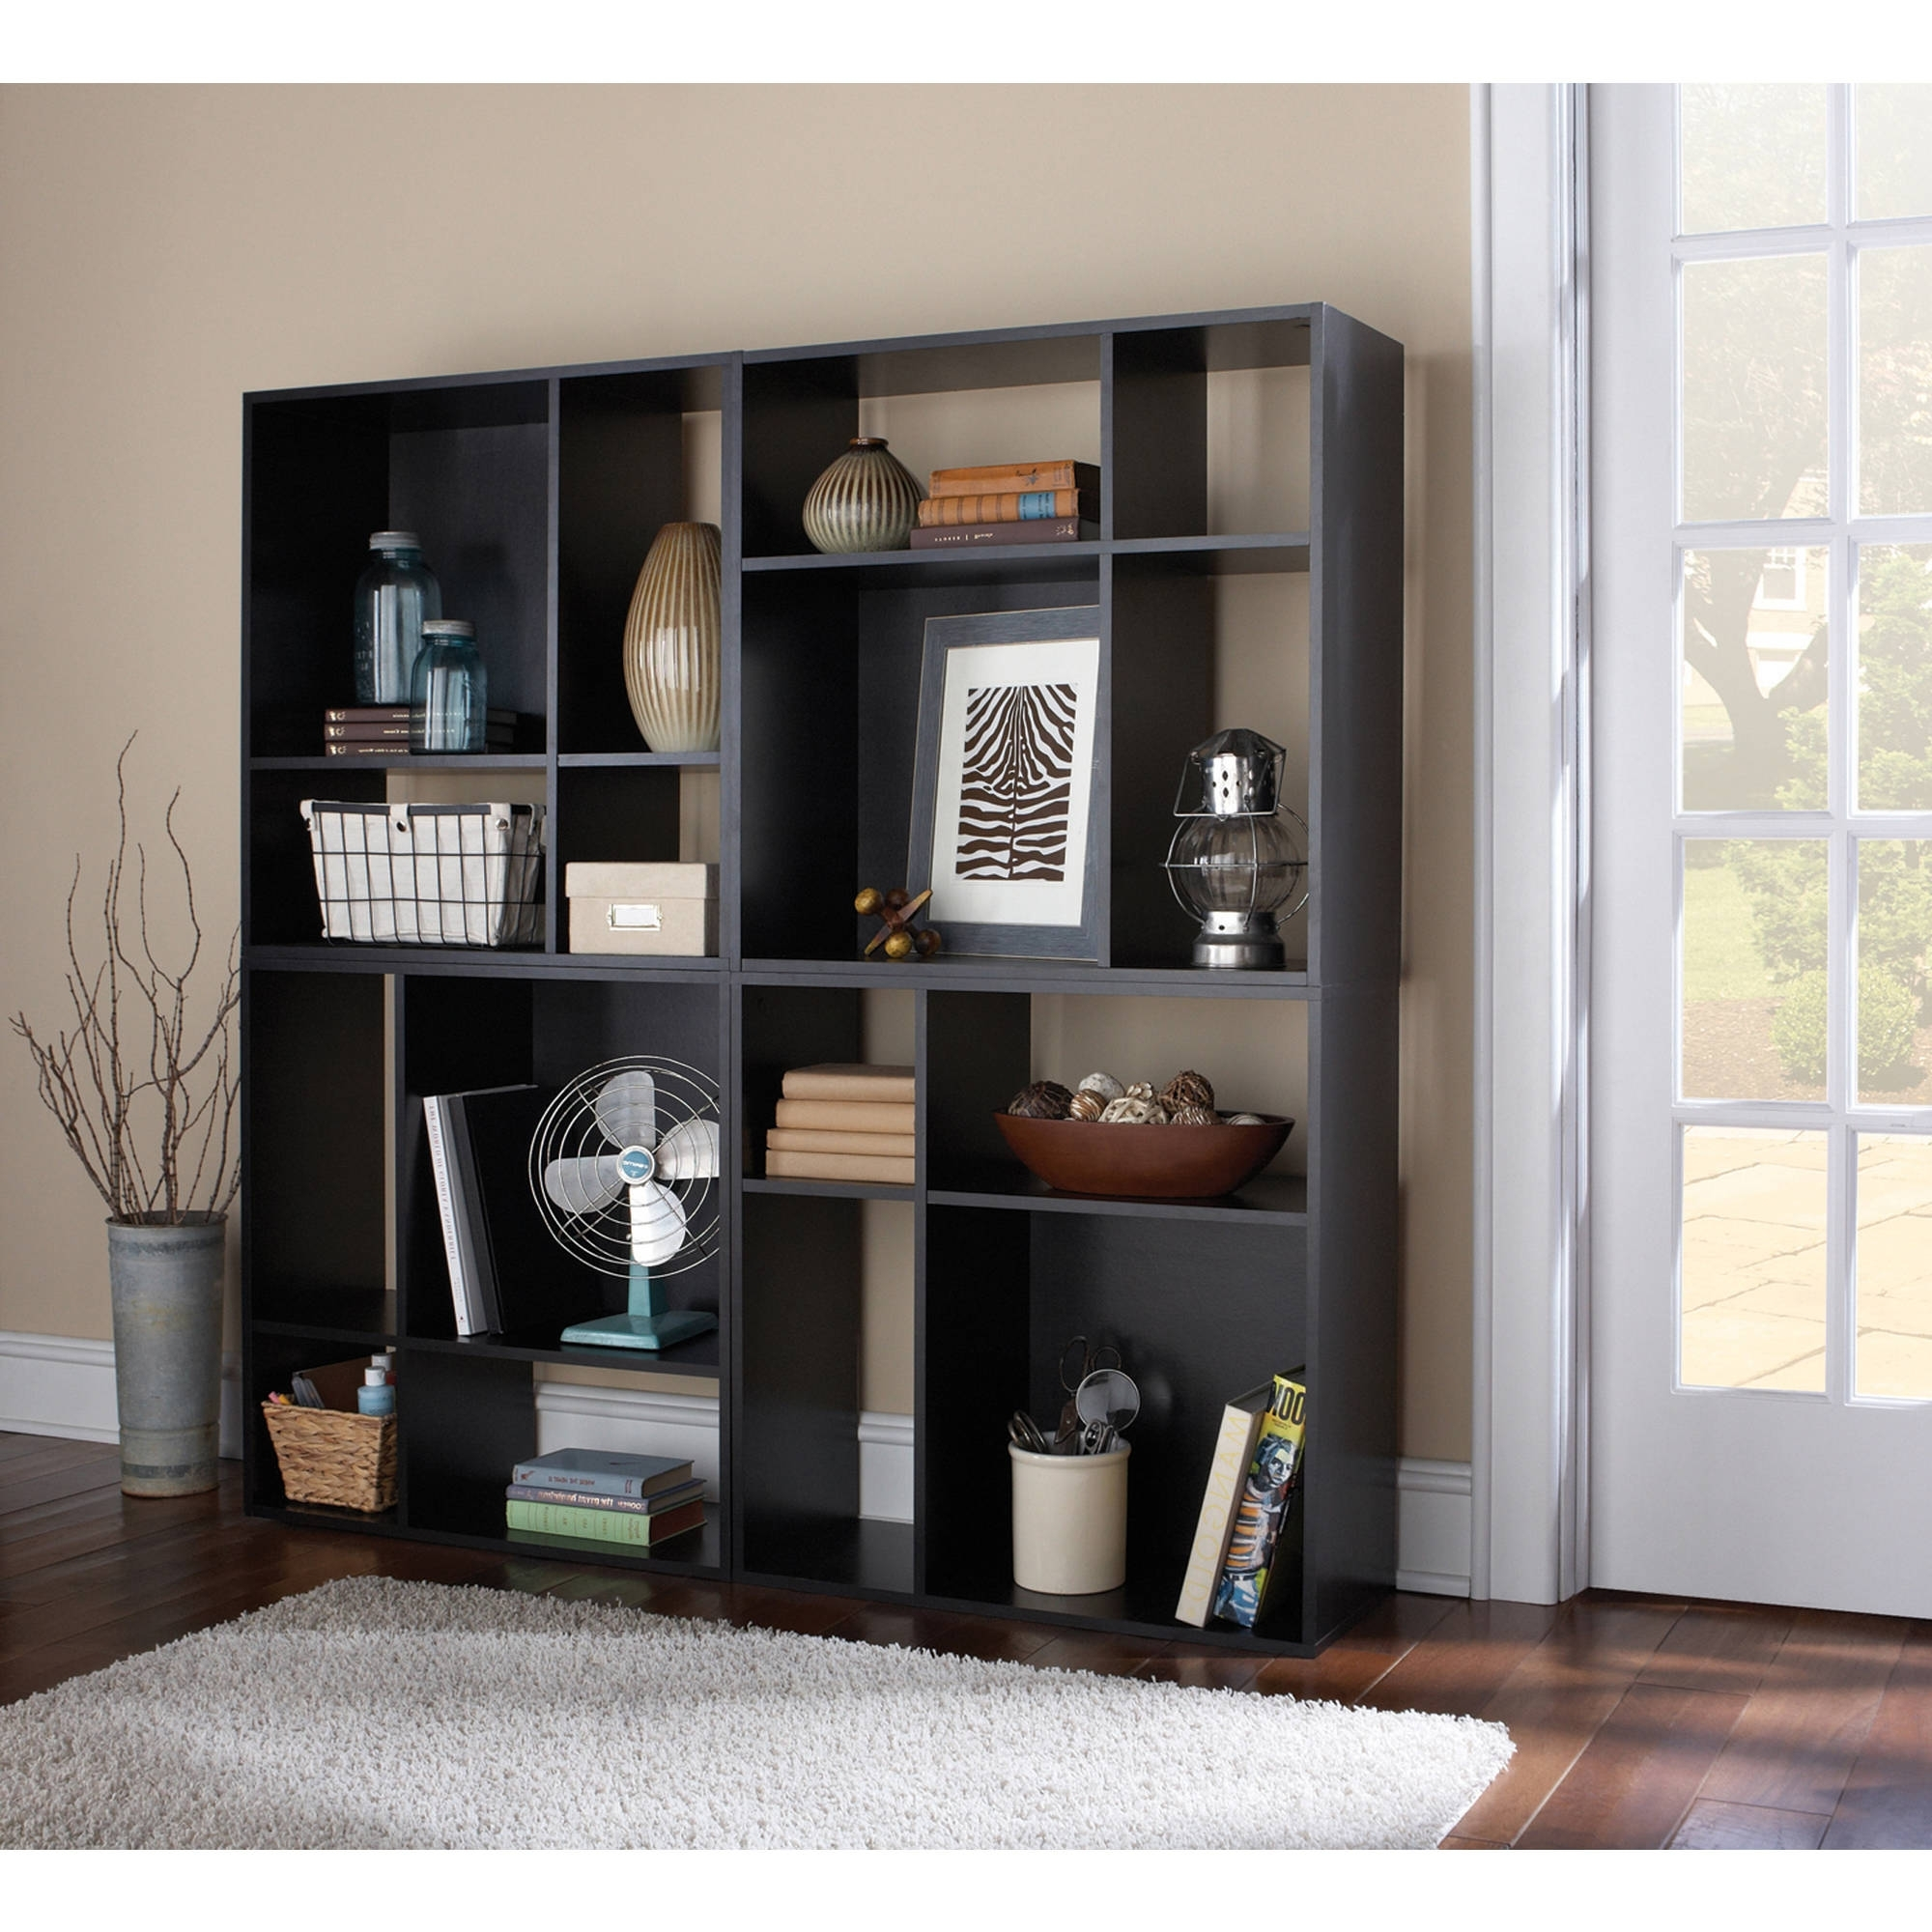 Mainstays 5 Shelf Bookcases Within Popular Home Furniture Storage Book Shelfs Shelving And Bookcases 4 Cube (View 13 of 15)